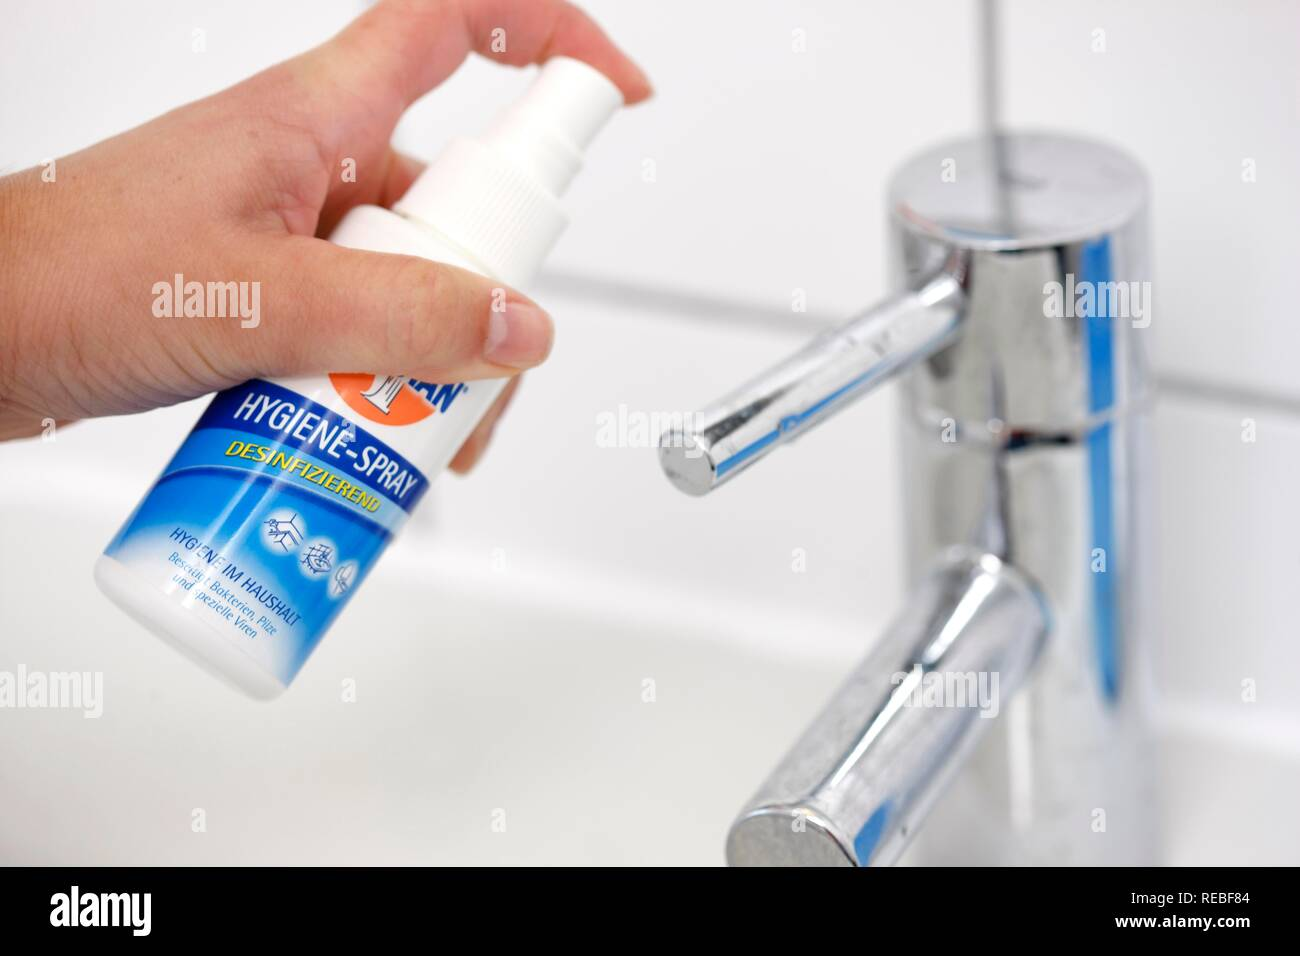 Hand basin being disinfected with a disinfectant - Stock Image